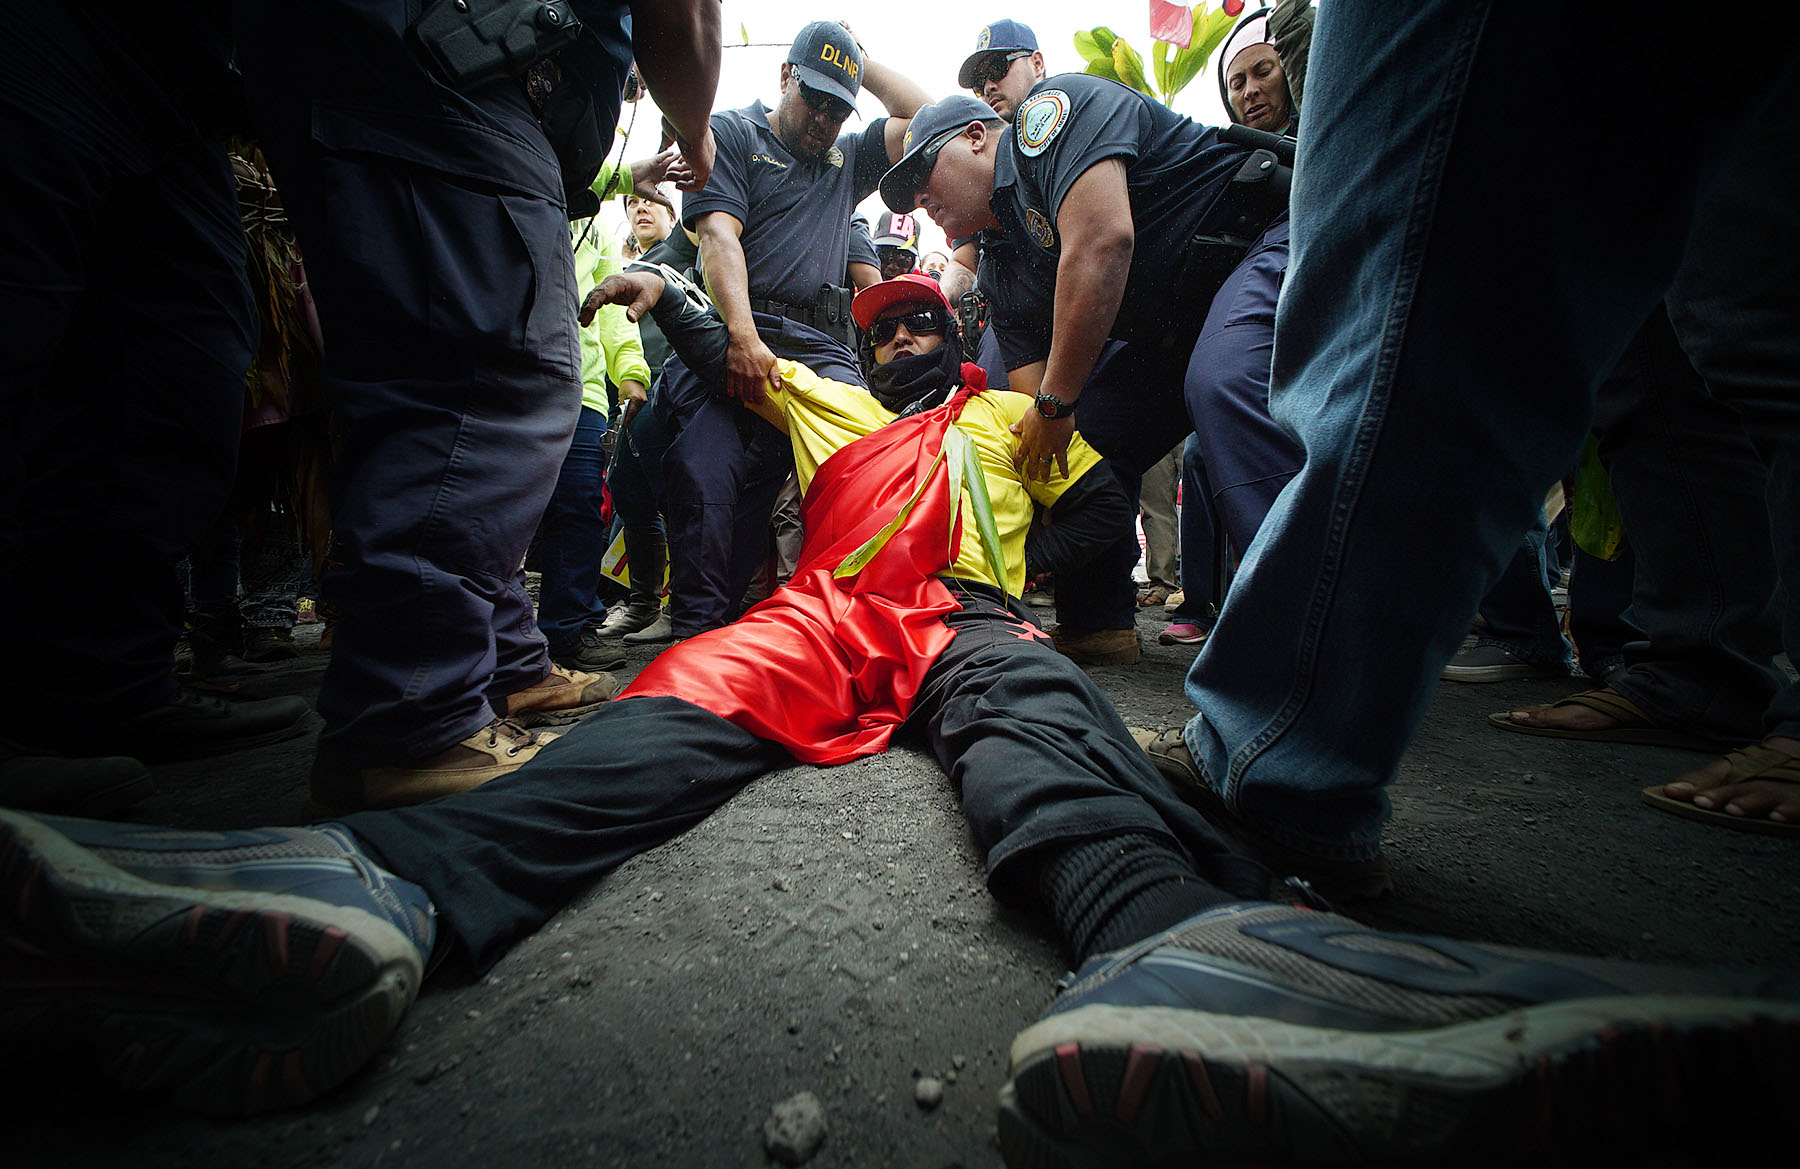 <p>A TMT demonstrator is arrested as he lies on the road and refuses to move out of way of vehicles that are attempting to reach the telescope construction site.</p>